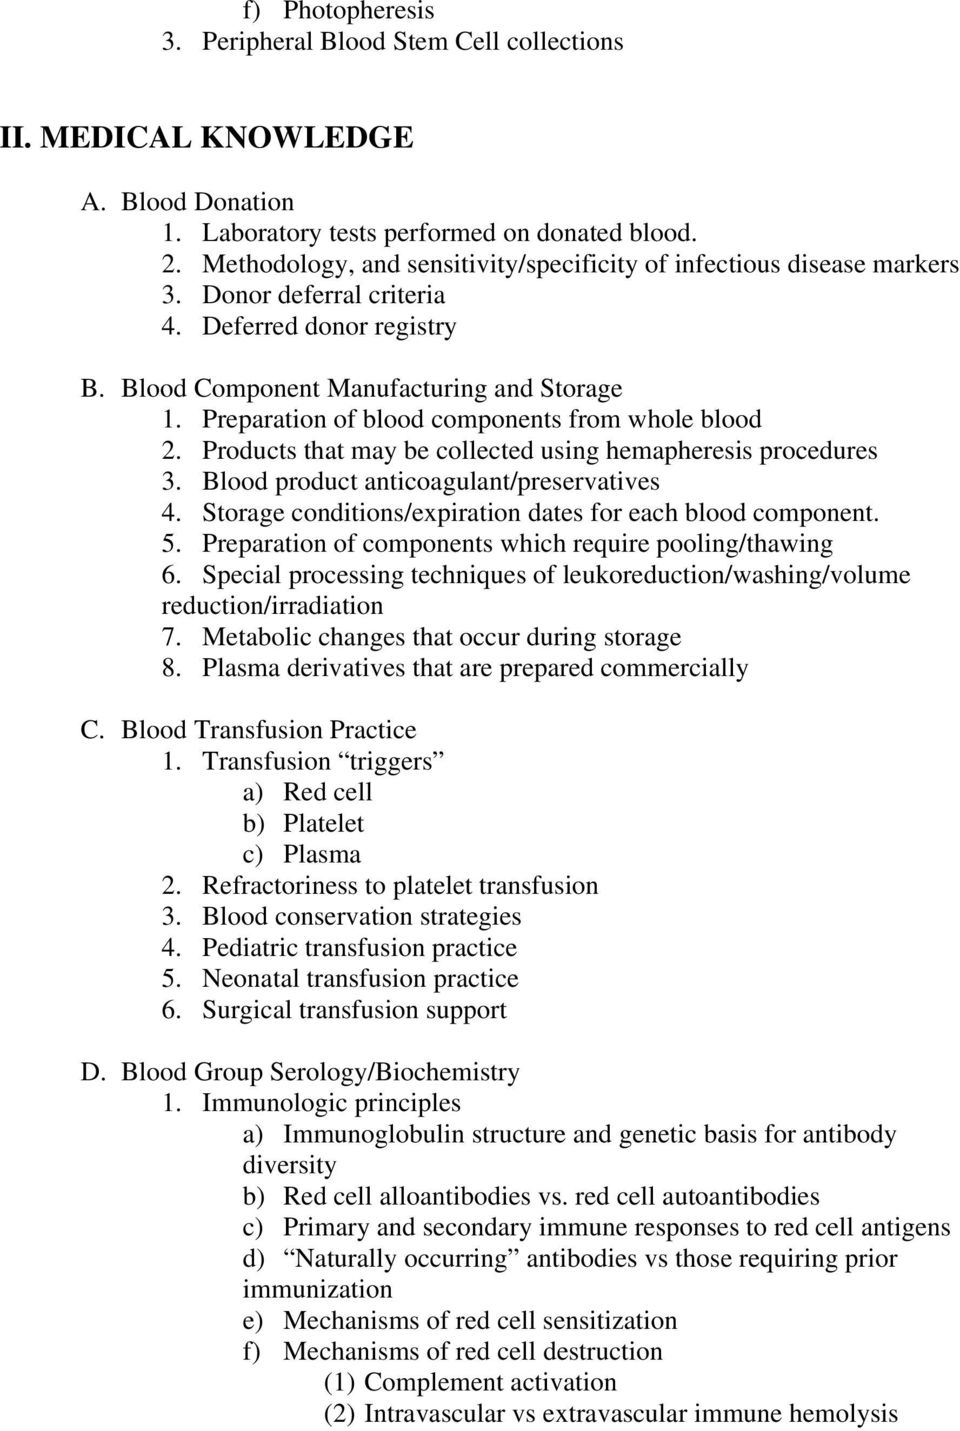 Preparation of blood components from whole blood 2. Products that may be collected using hemapheresis procedures 3. Blood product anticoagulant/preservatives 4.